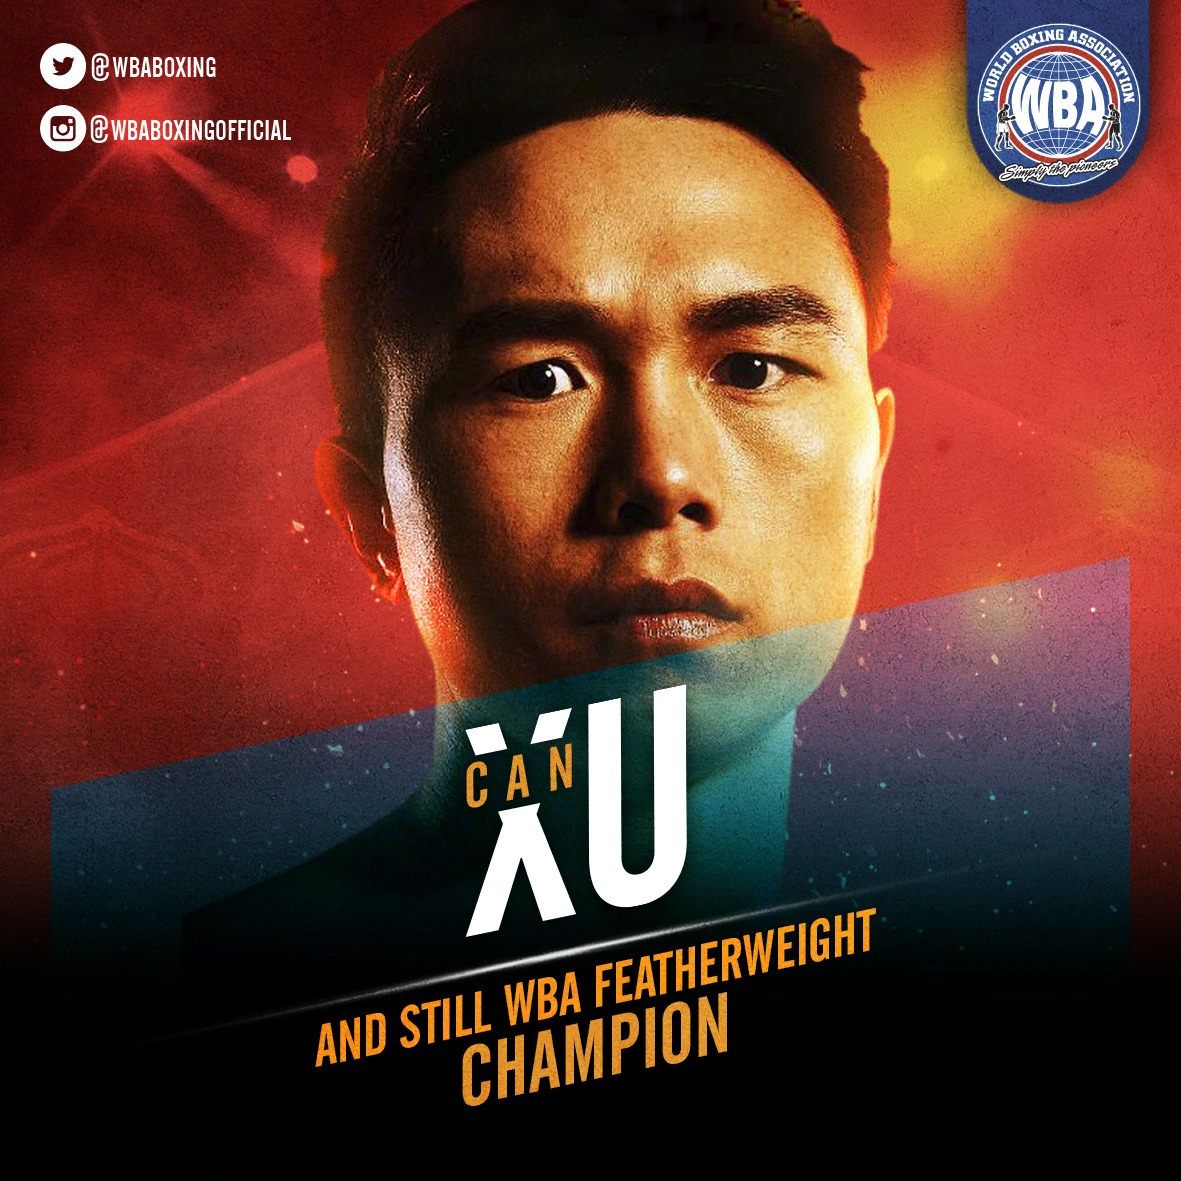 Can Xu continues as WBA Champion with big win over Robles